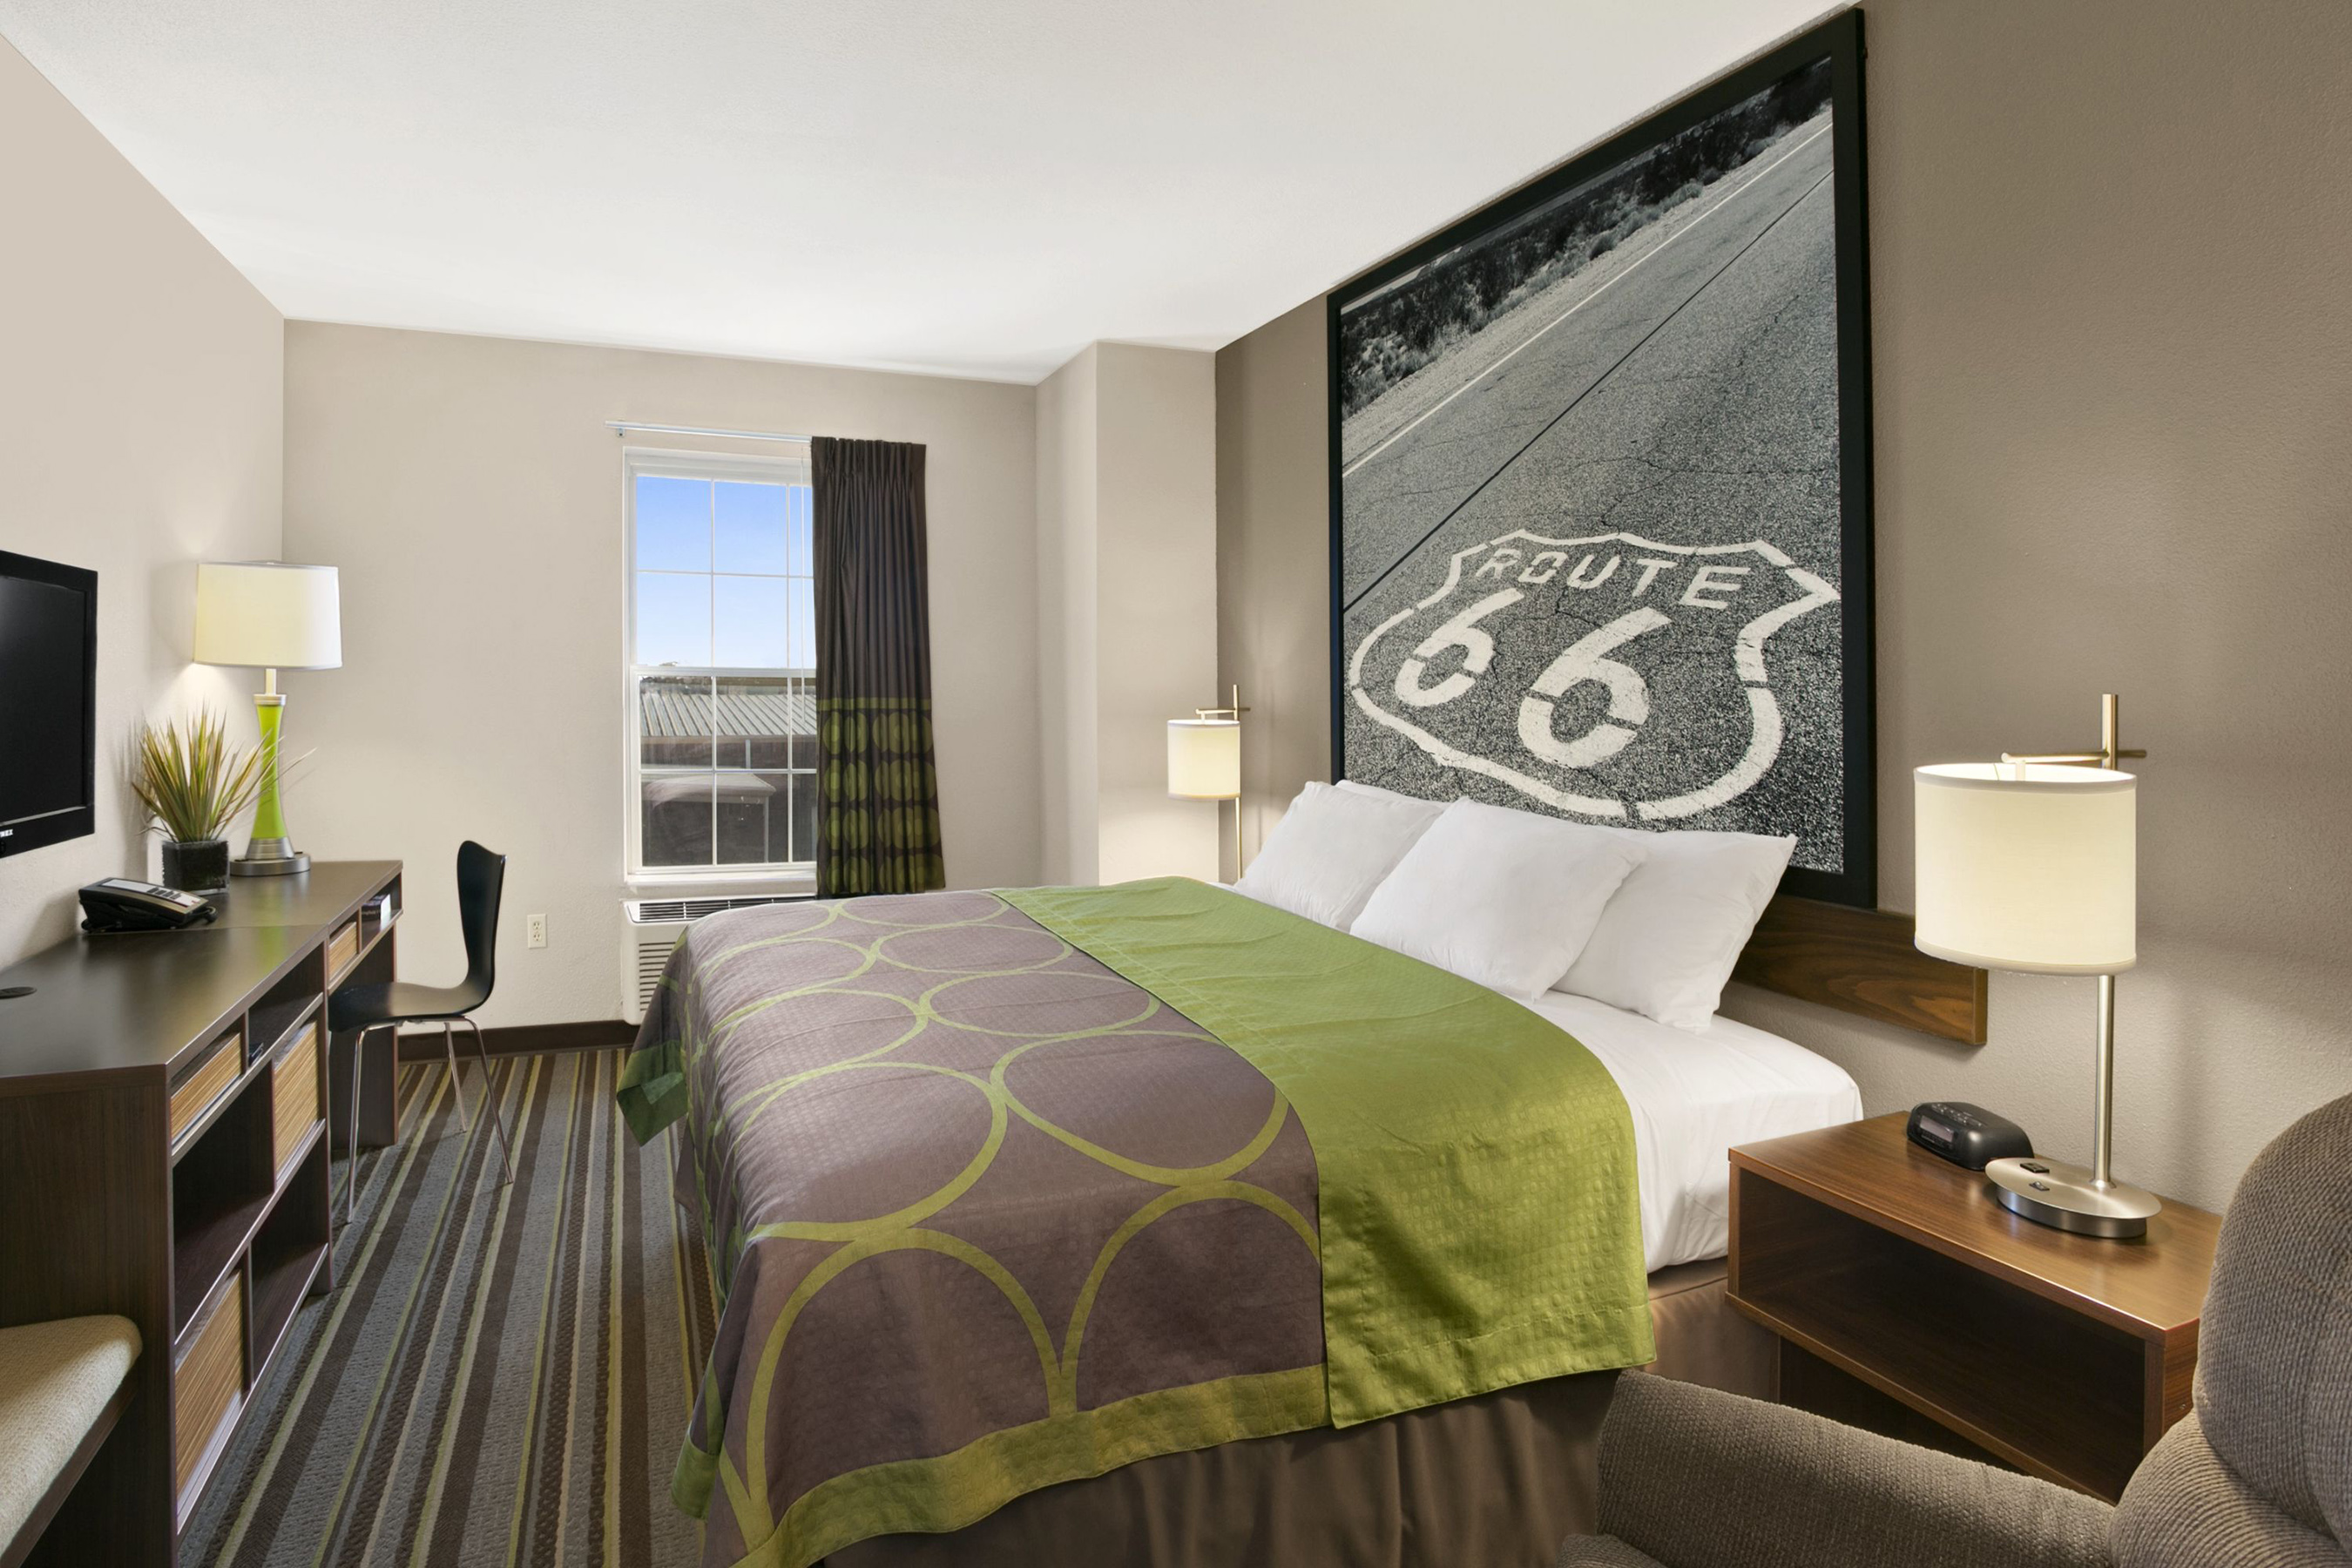 The interior of Super 8's redesigned guestroom was the inspiration for the creation of ROADM8 and its debut at the 2018 New York International Auto Show. Offering a sleek, new, modern look and feel, each room features classic black and white photography, which doubles as a headboard, depicting iconic landmarks and landscapes reflective of each hotel and its nearby surroundings.